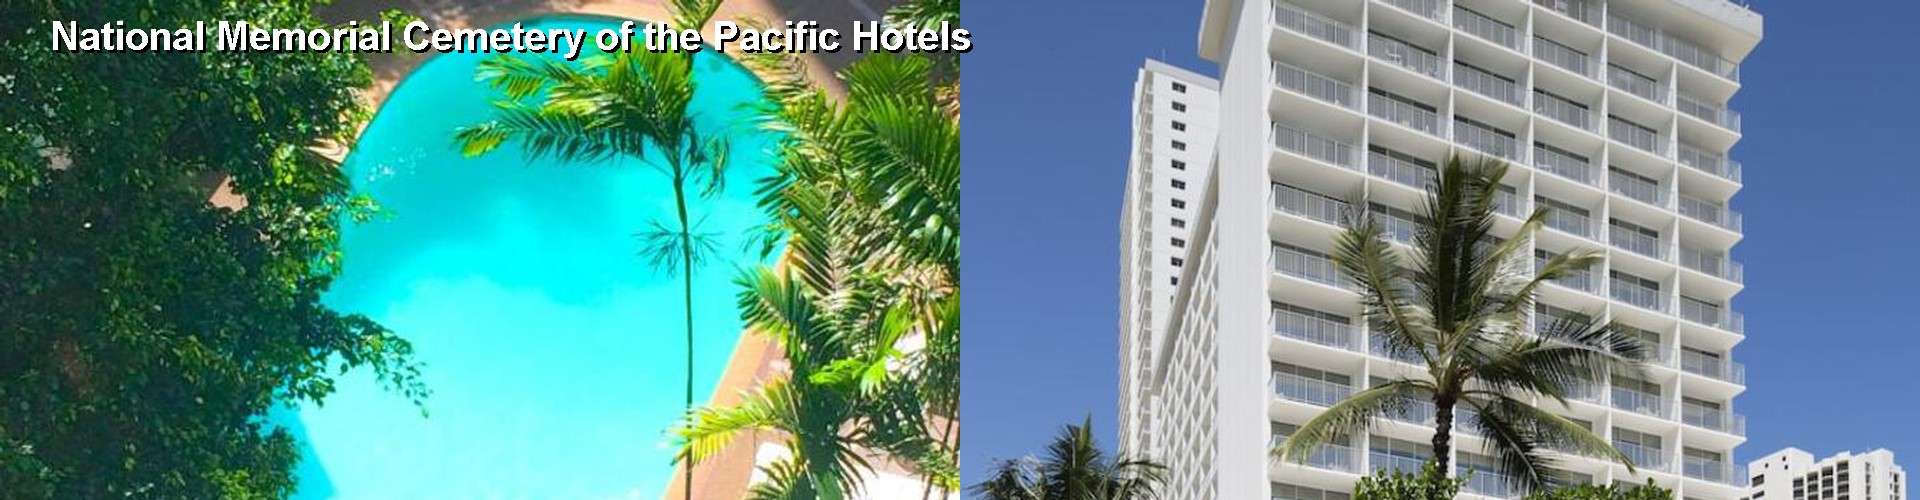 5 Best Hotels near National Memorial Cemetery of the Pacific